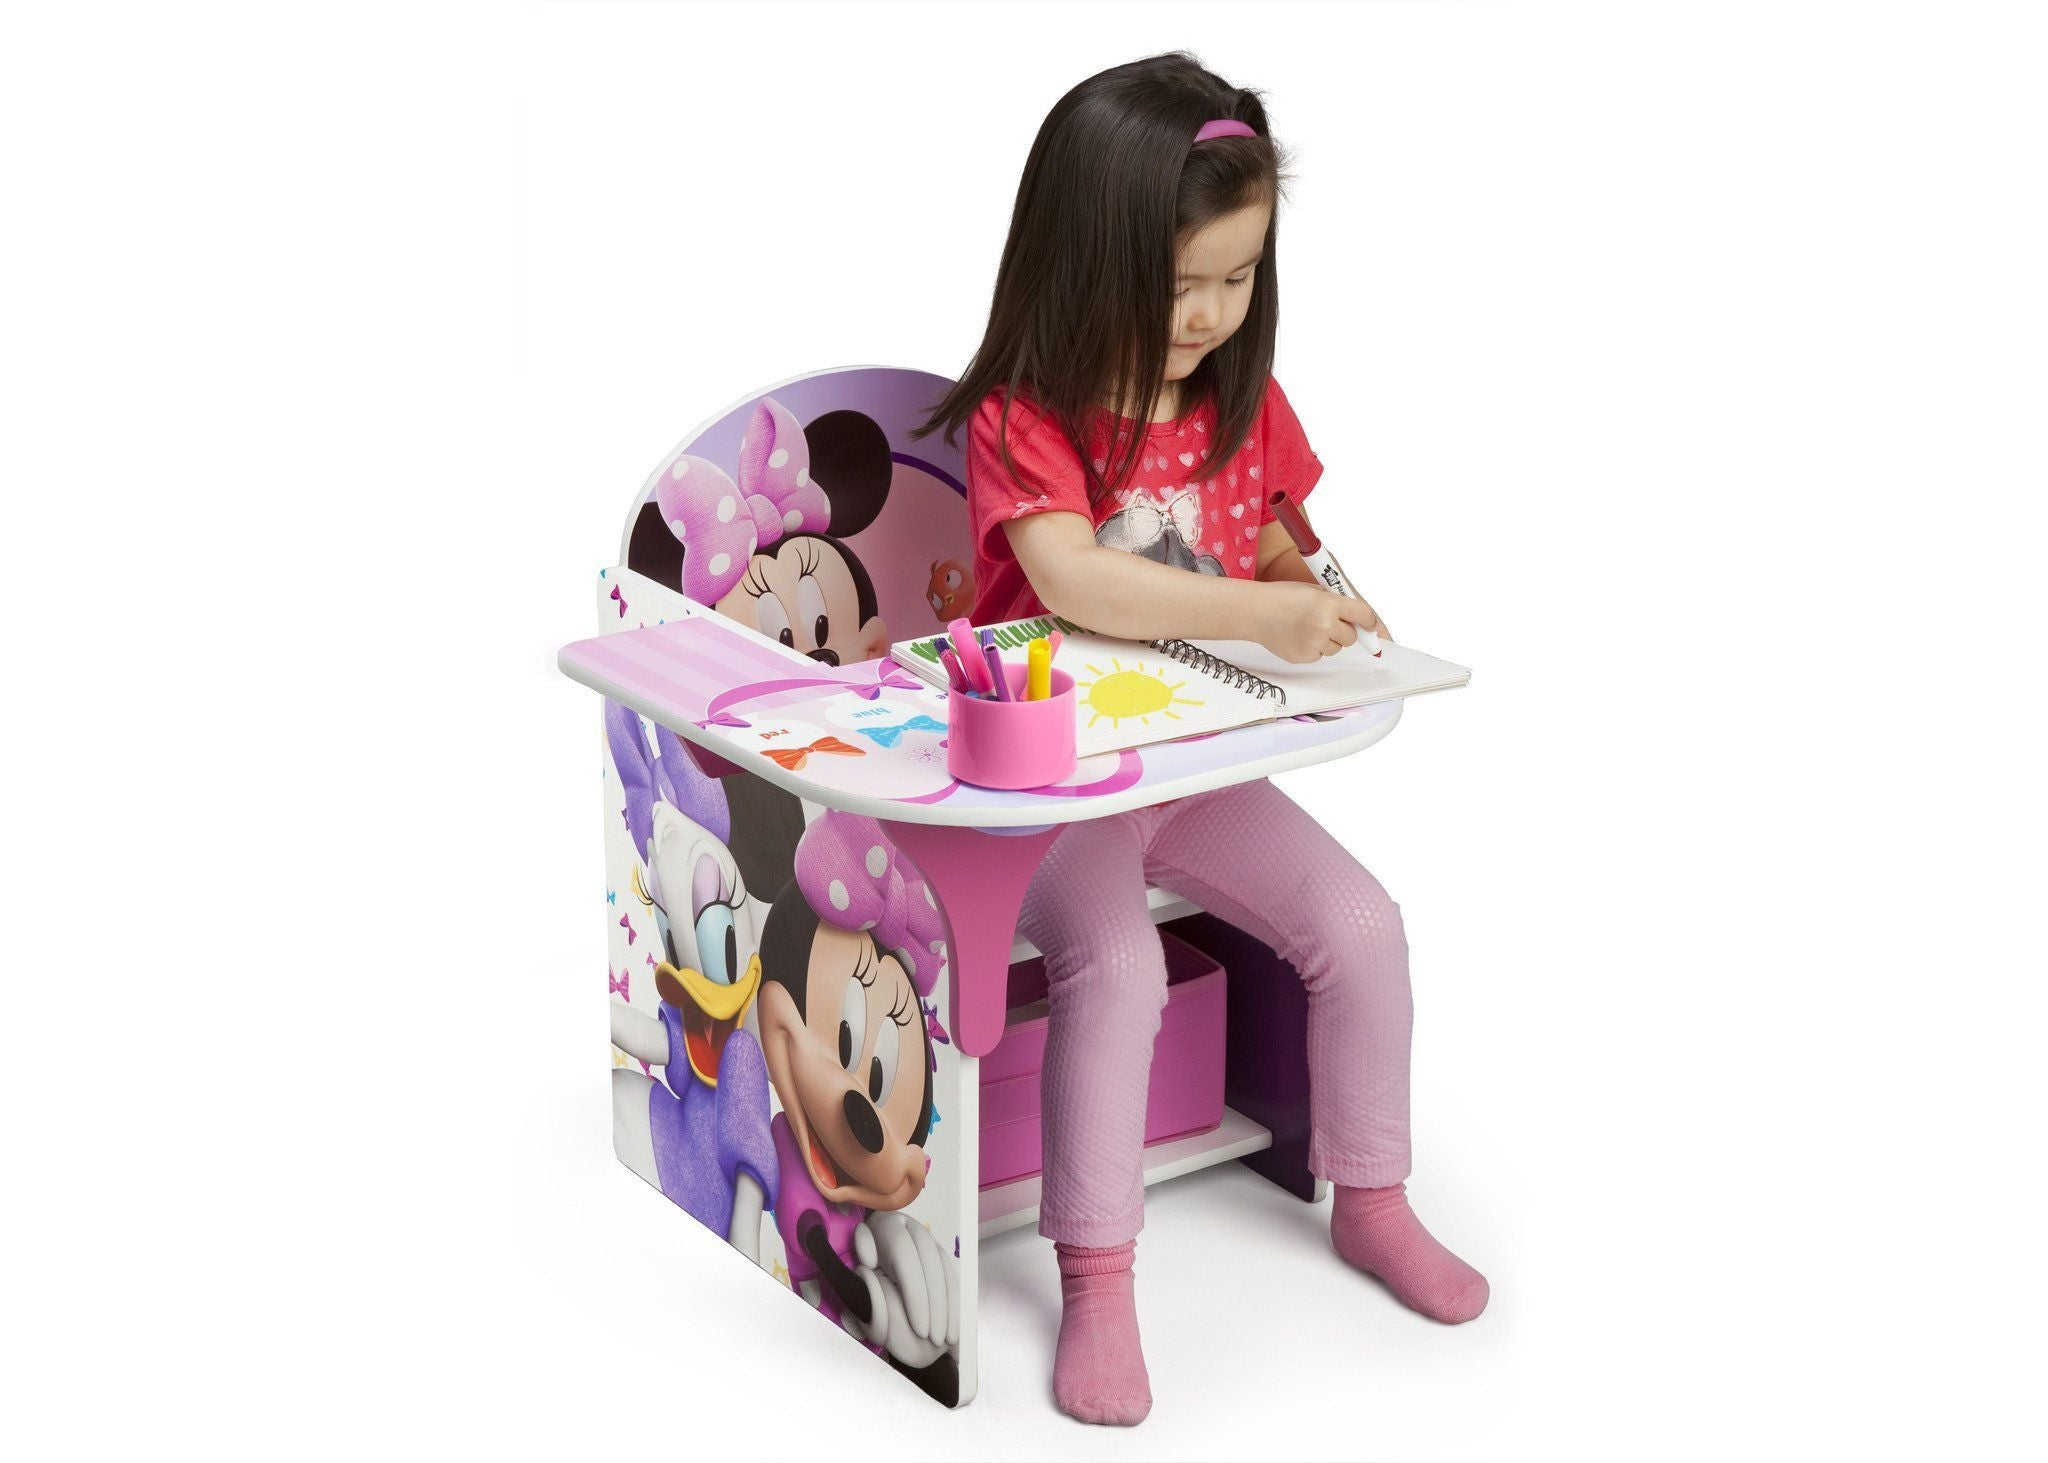 ... Delta Children Minnie Mouse Chair Desk With Storage Bin Right Side View  With Props A3a